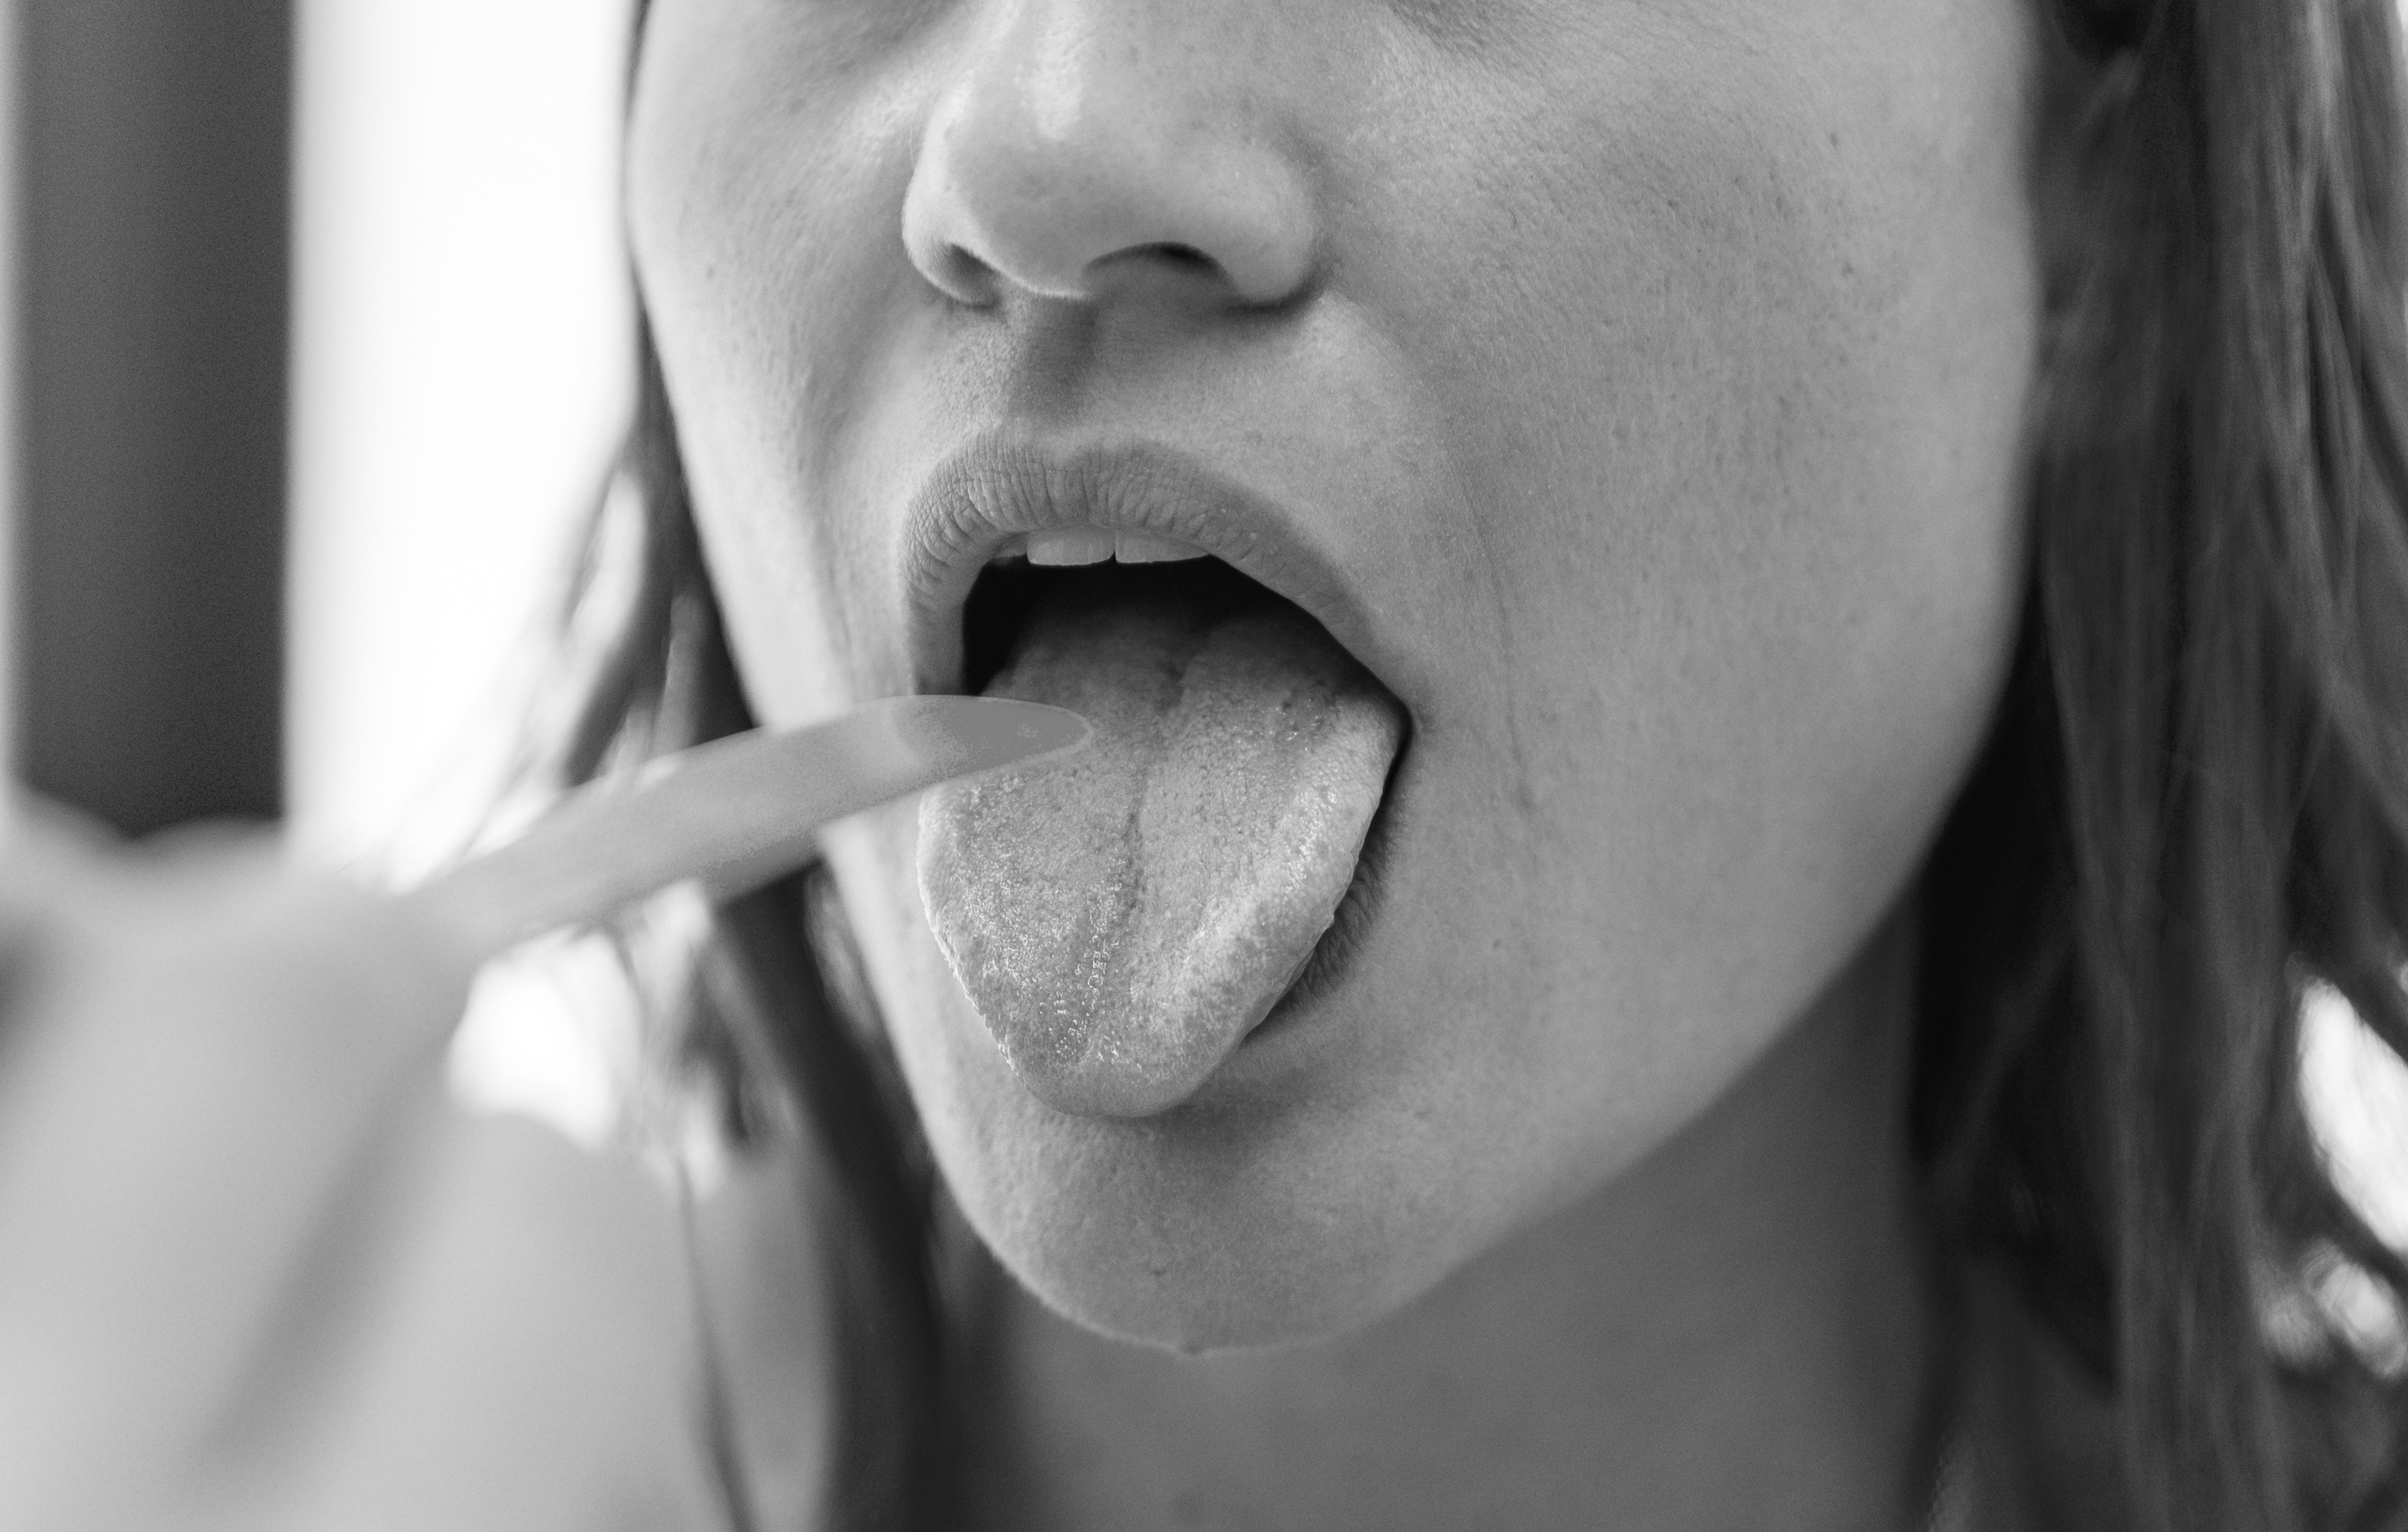 Twitching Tongue: Bulbar ALS or Normal?